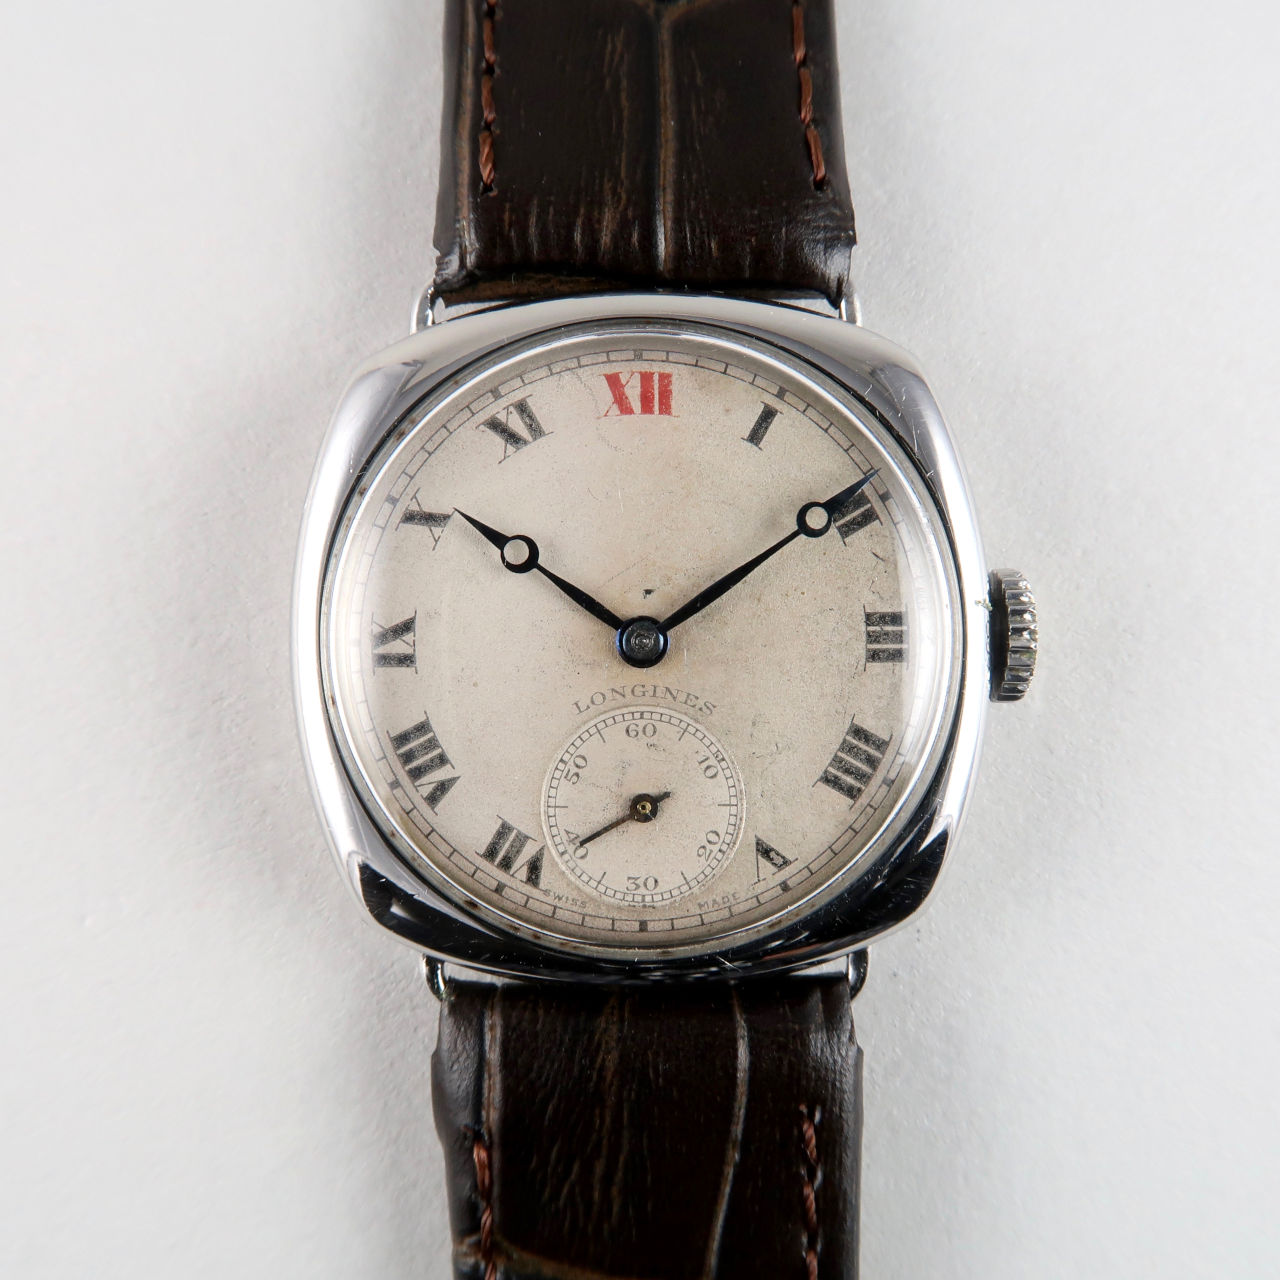 Longines Ref. 3149 invoiced 1938 | steel manual vintage wristwatch